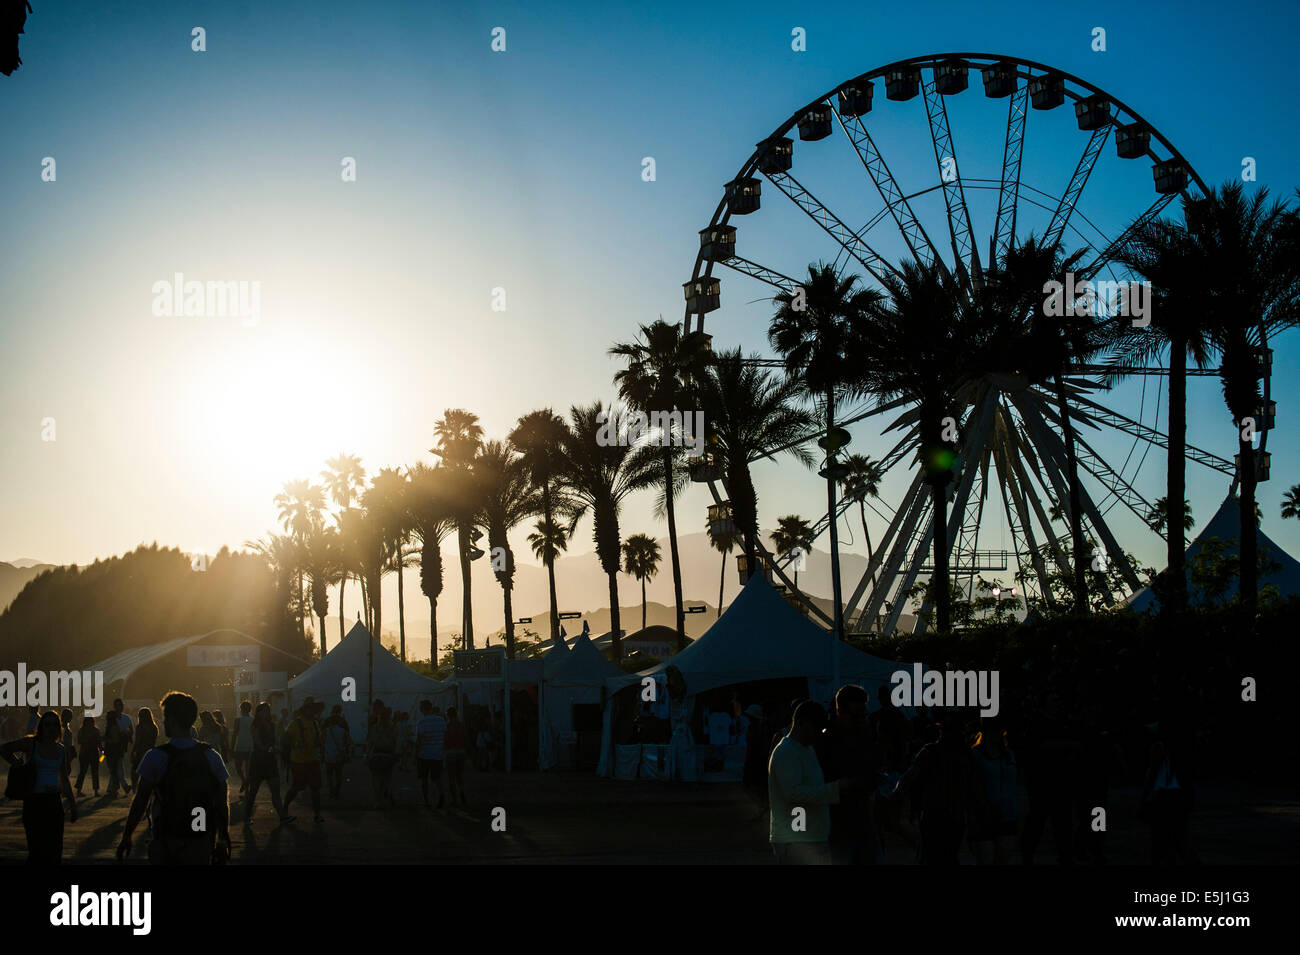 Famous Coachella Ferris Wheel at dusk Stock Photo